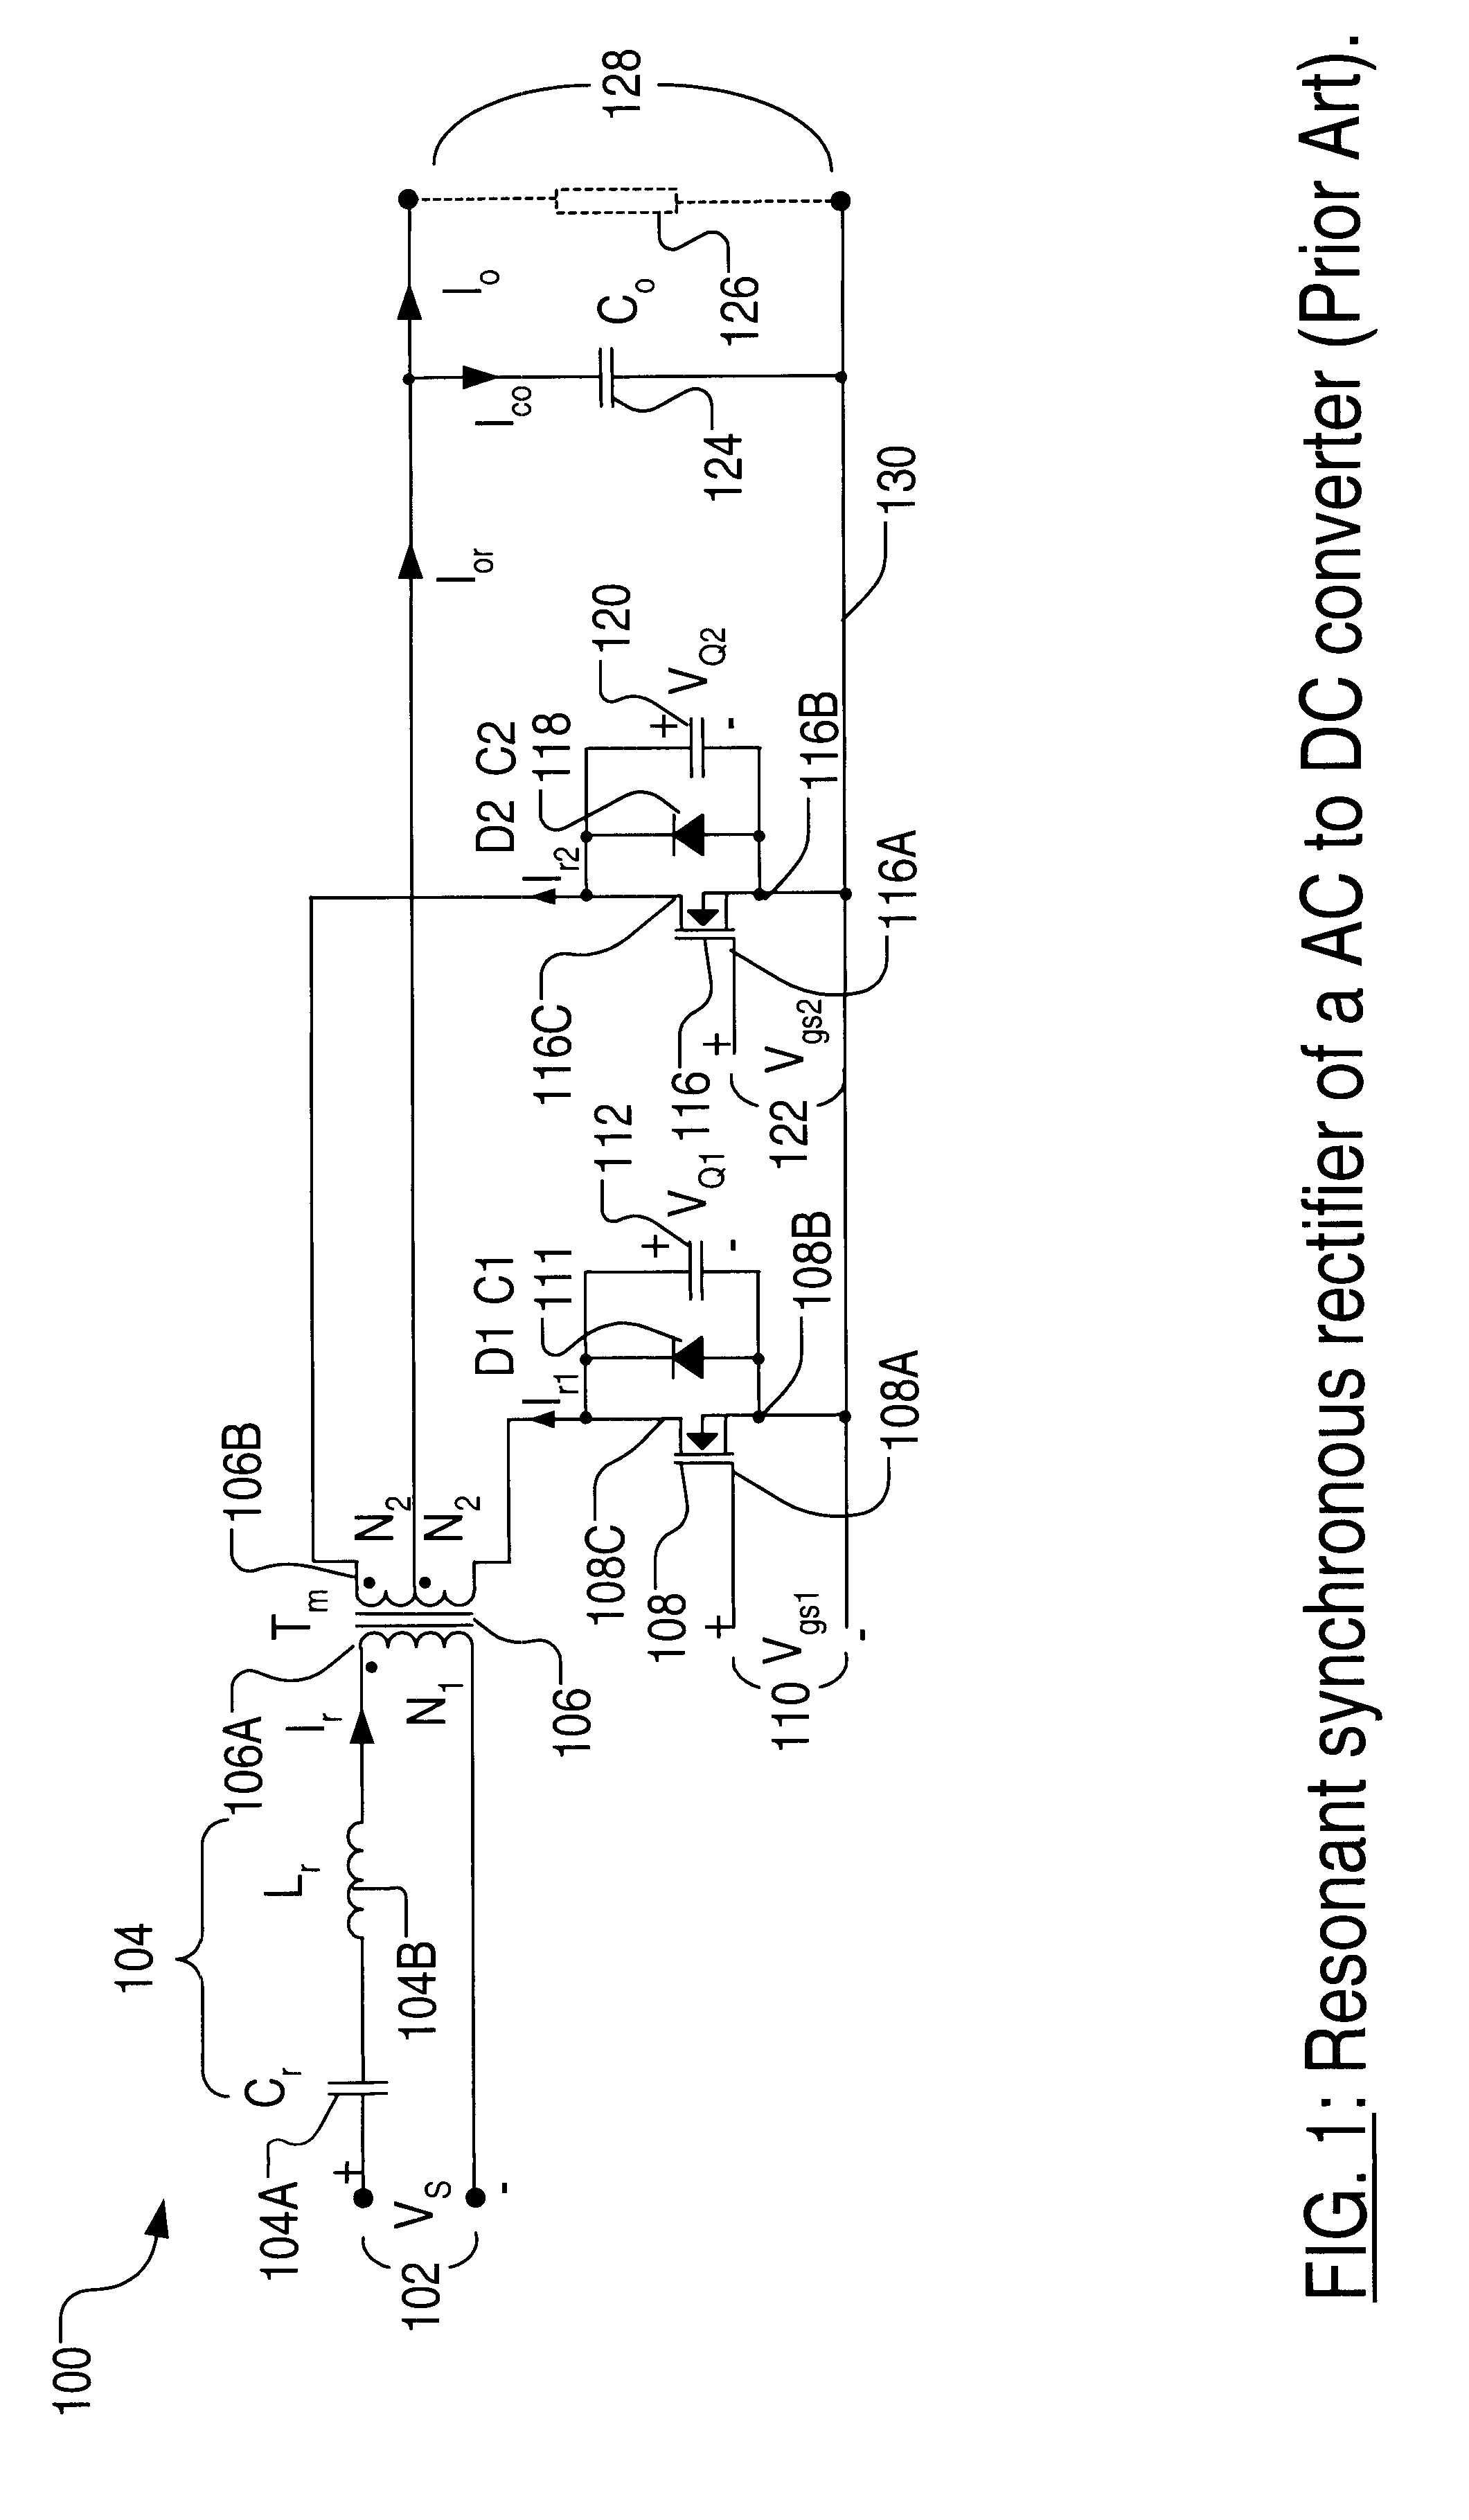 Brevet Us6577517 Pulse With Modulation Control Circuit For A High The Time Delay Fet Controlcircuit Diagram Patent Drawing